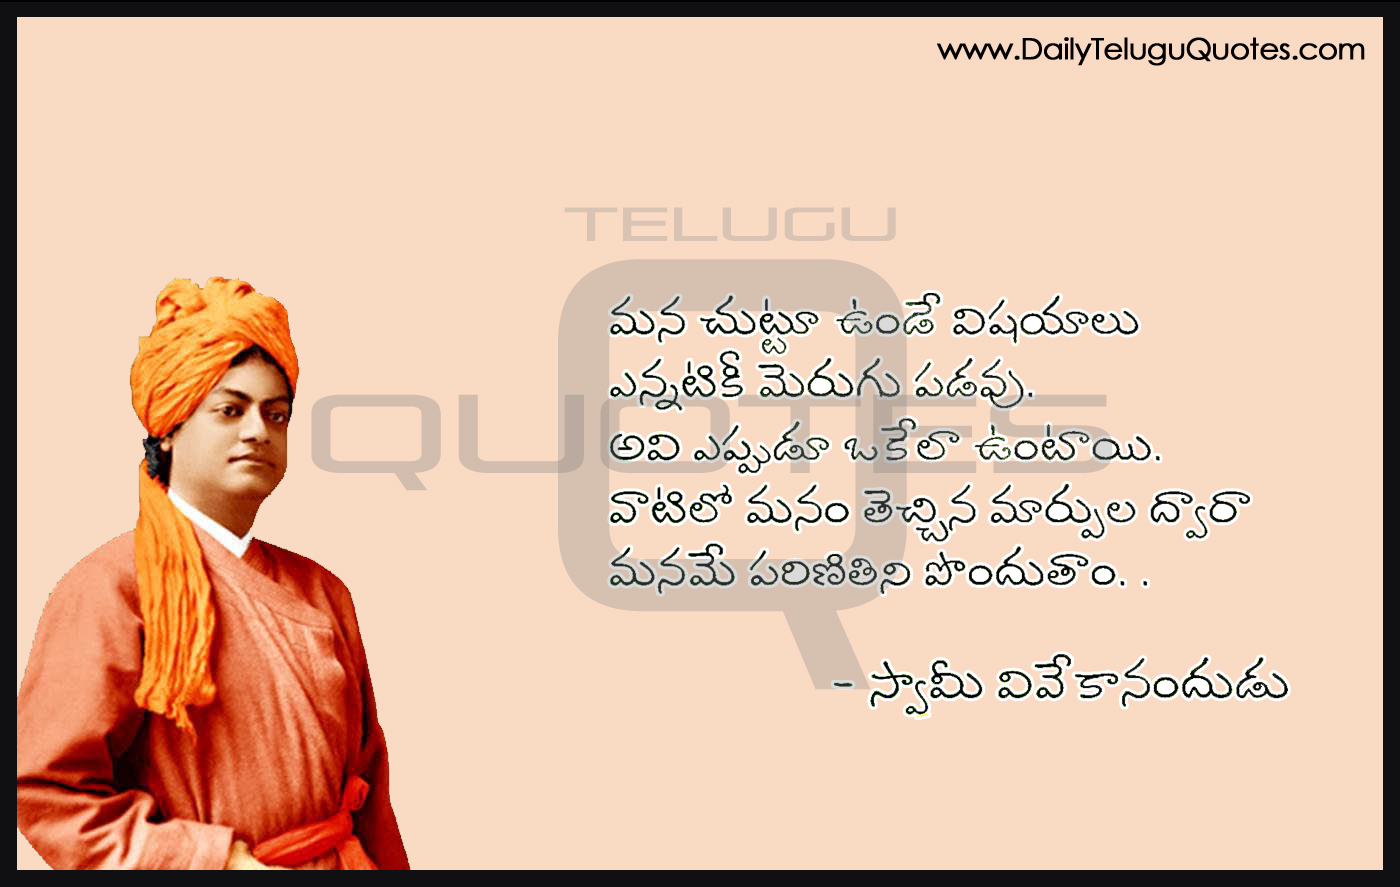 telugu new swami vivekananda good thinking quotes and ...